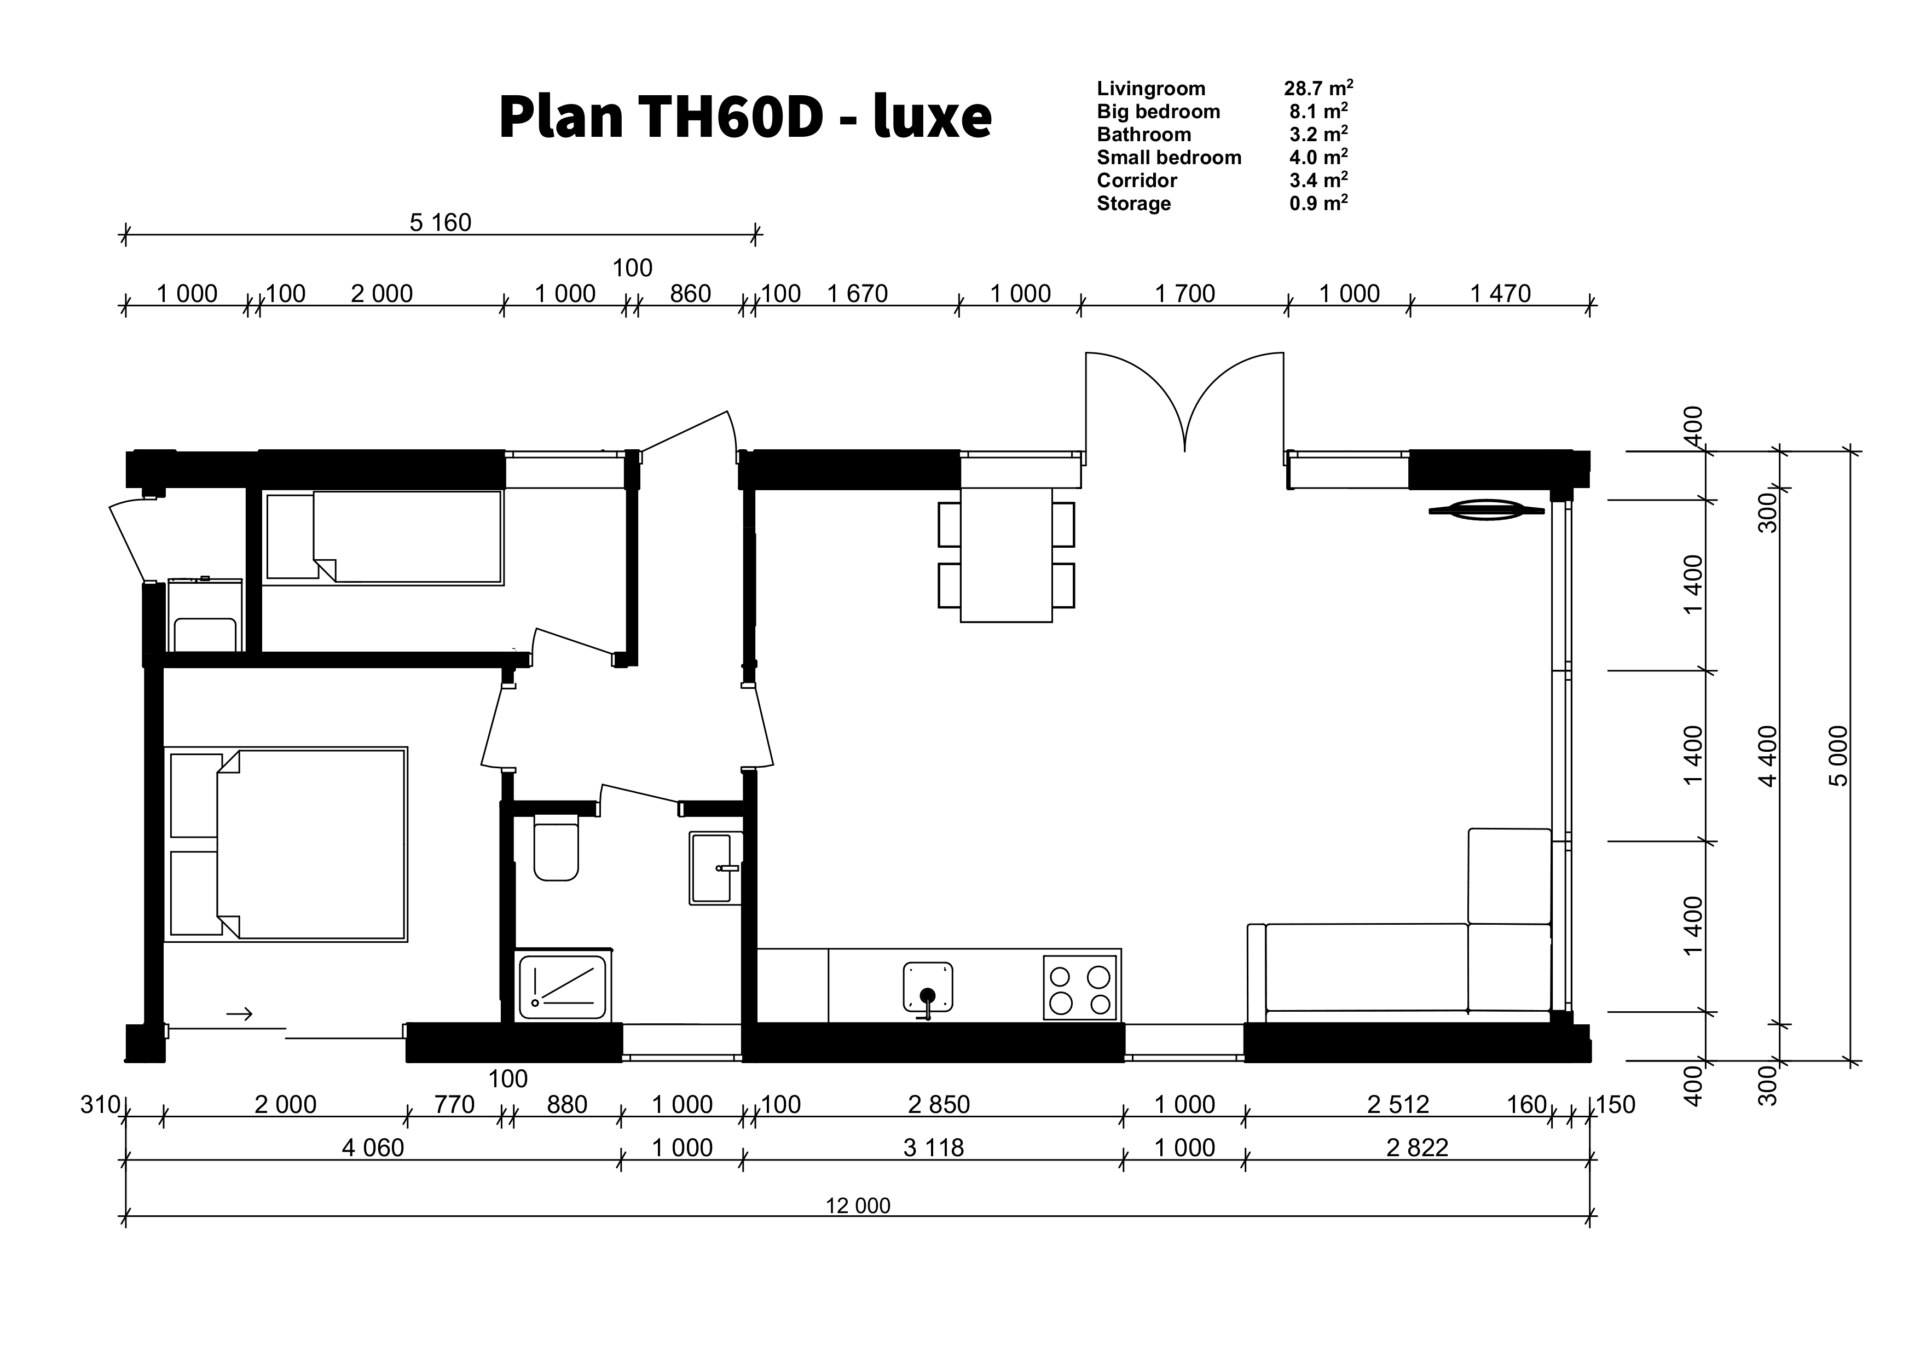 TH60D - luxe plan